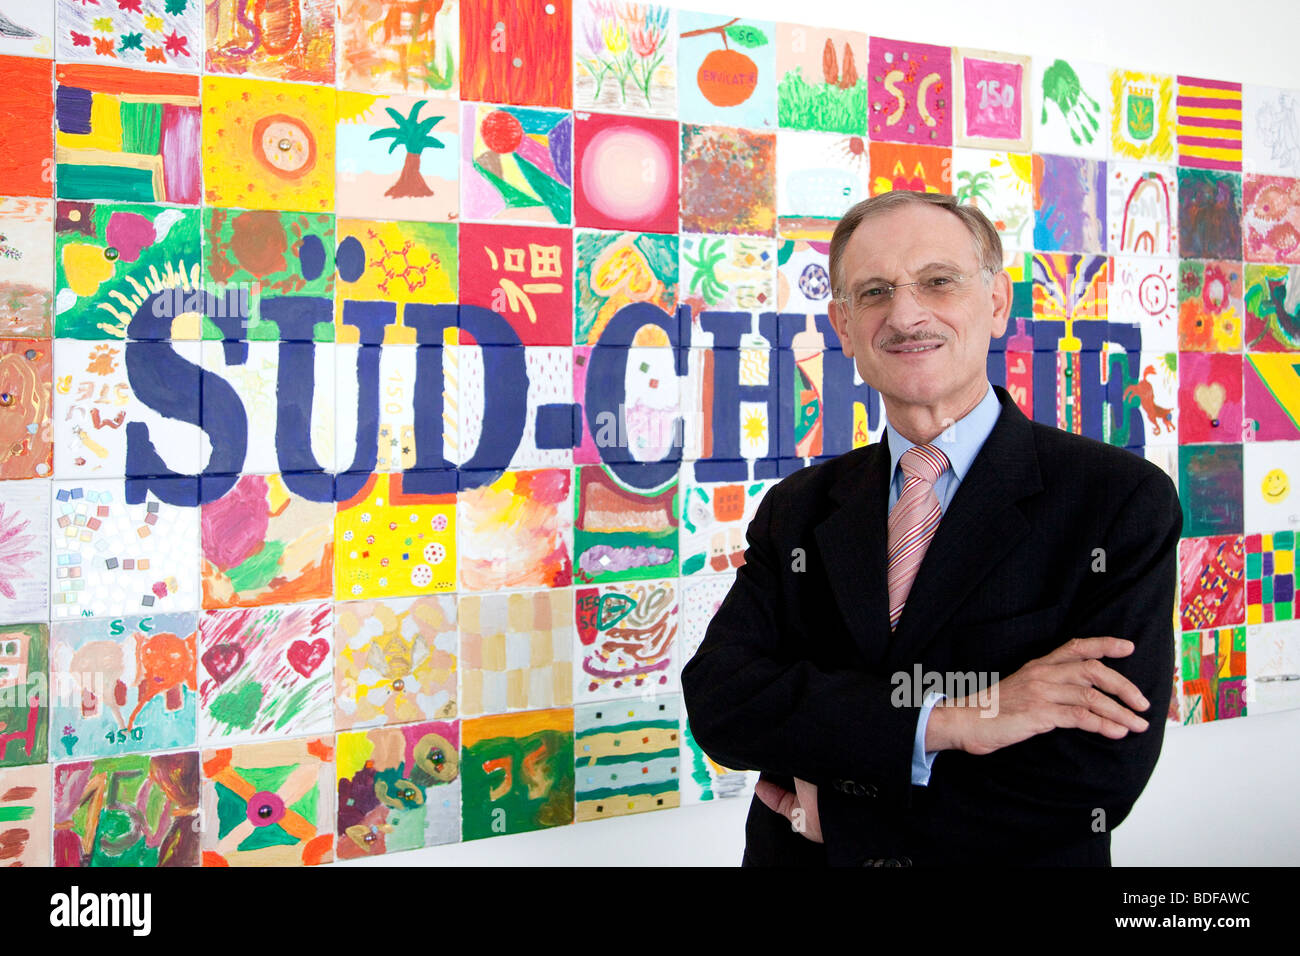 Guenter von Au, chair executive of the Sued-Chemie AG, in Munich, Bavaria, Germany, Europe - Stock Image